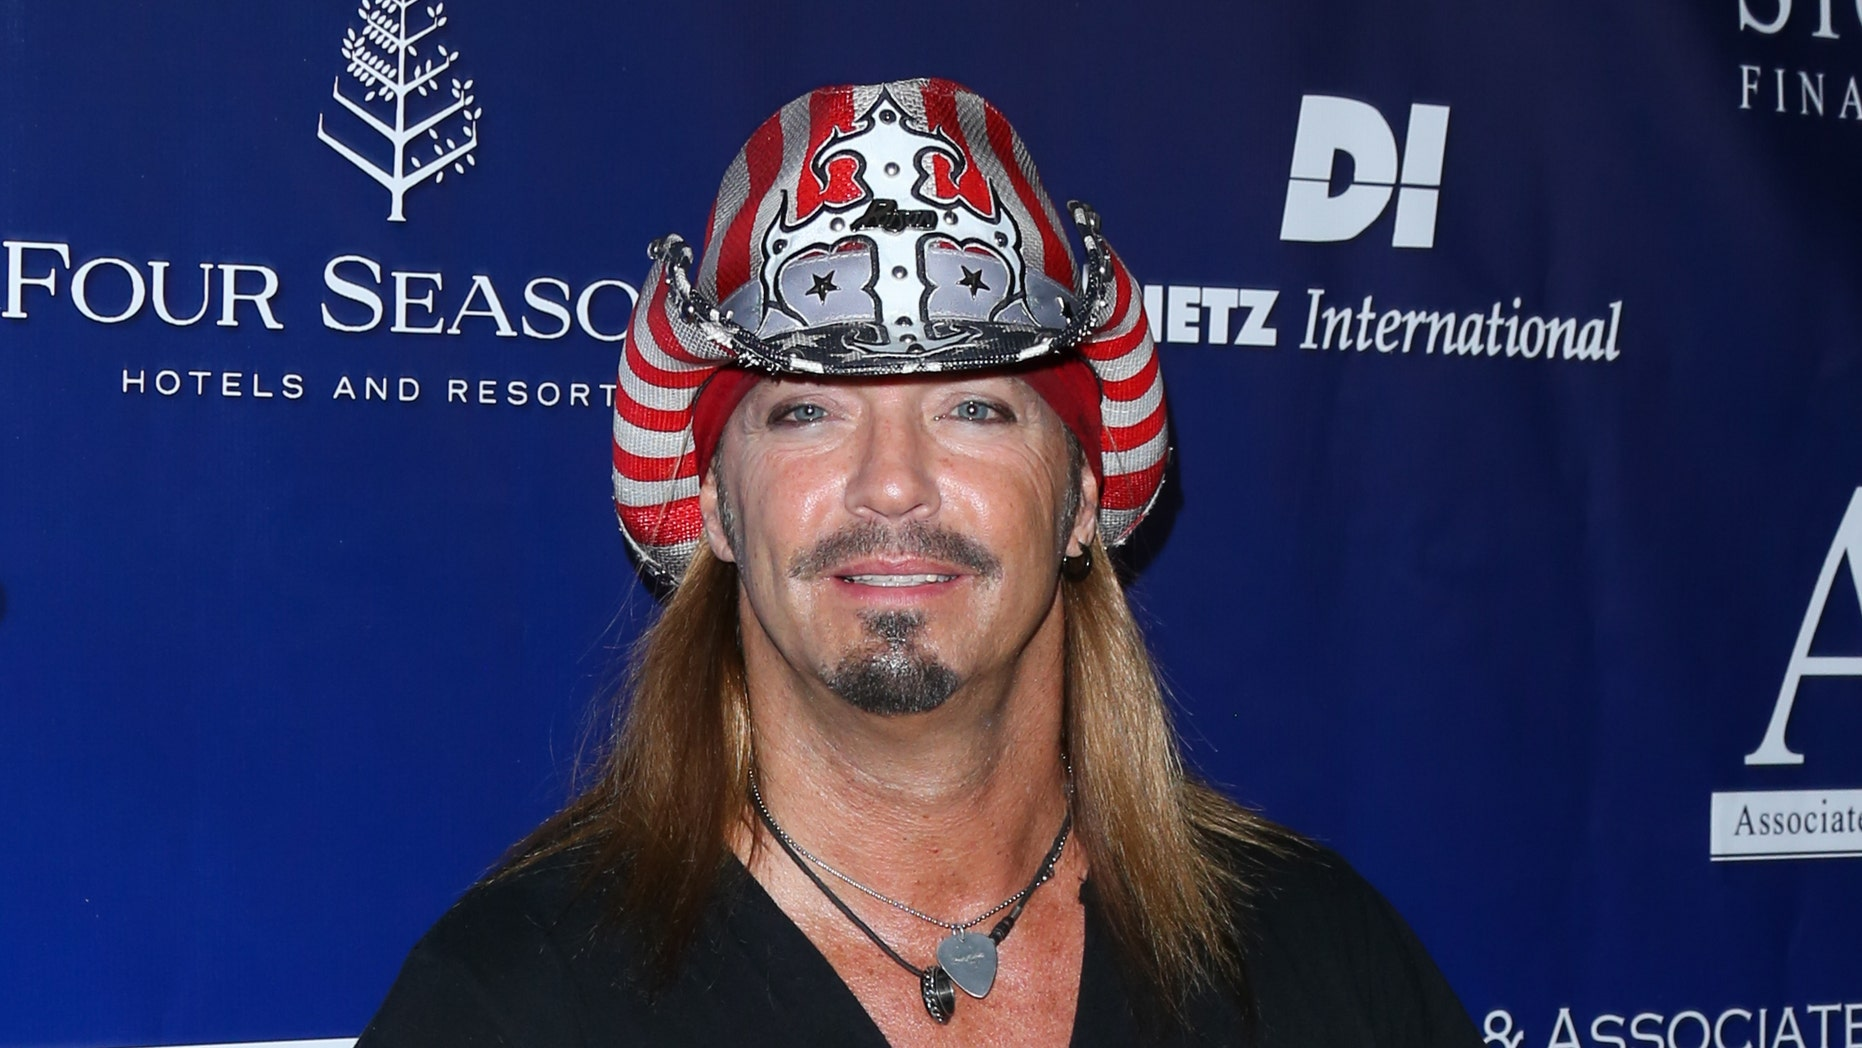 Bret Michaels spoke to Fox News about being a proud dad of two, his new music, as well as raising awareness for Type 1 diabetes. (Paul Archuleta/FilmMagic via Getty Images